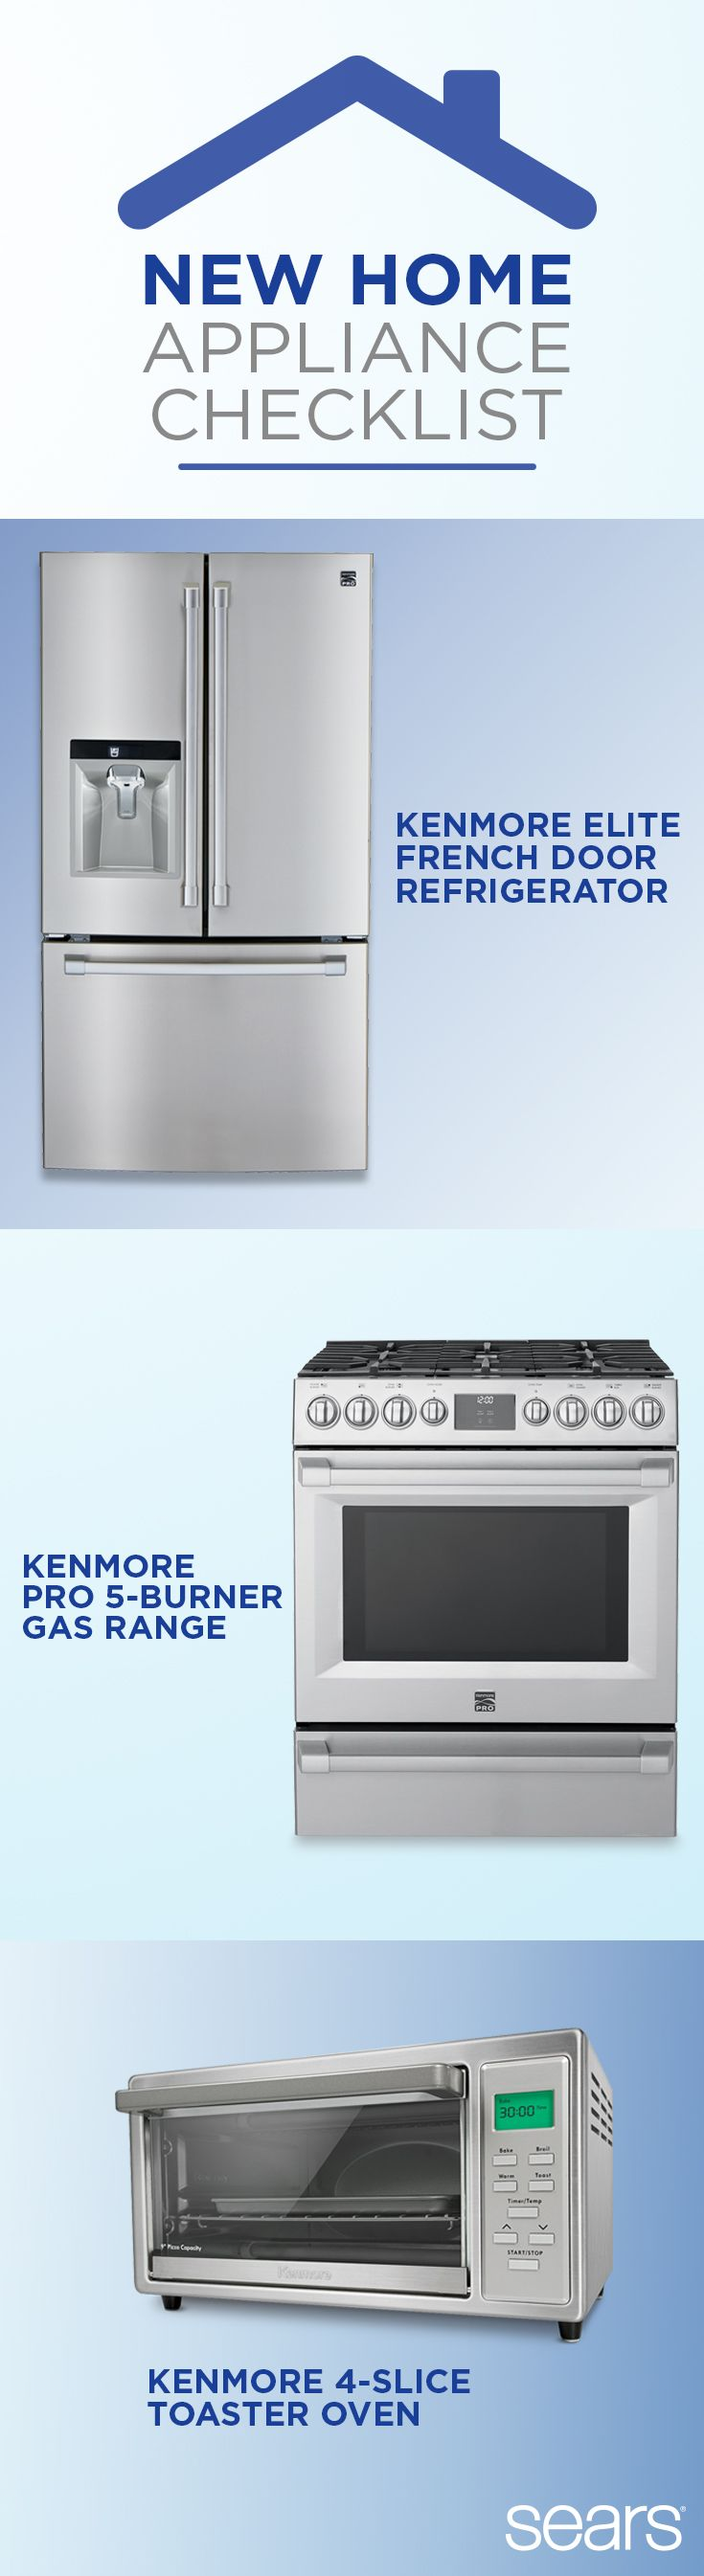 sears appliance repair gatineau